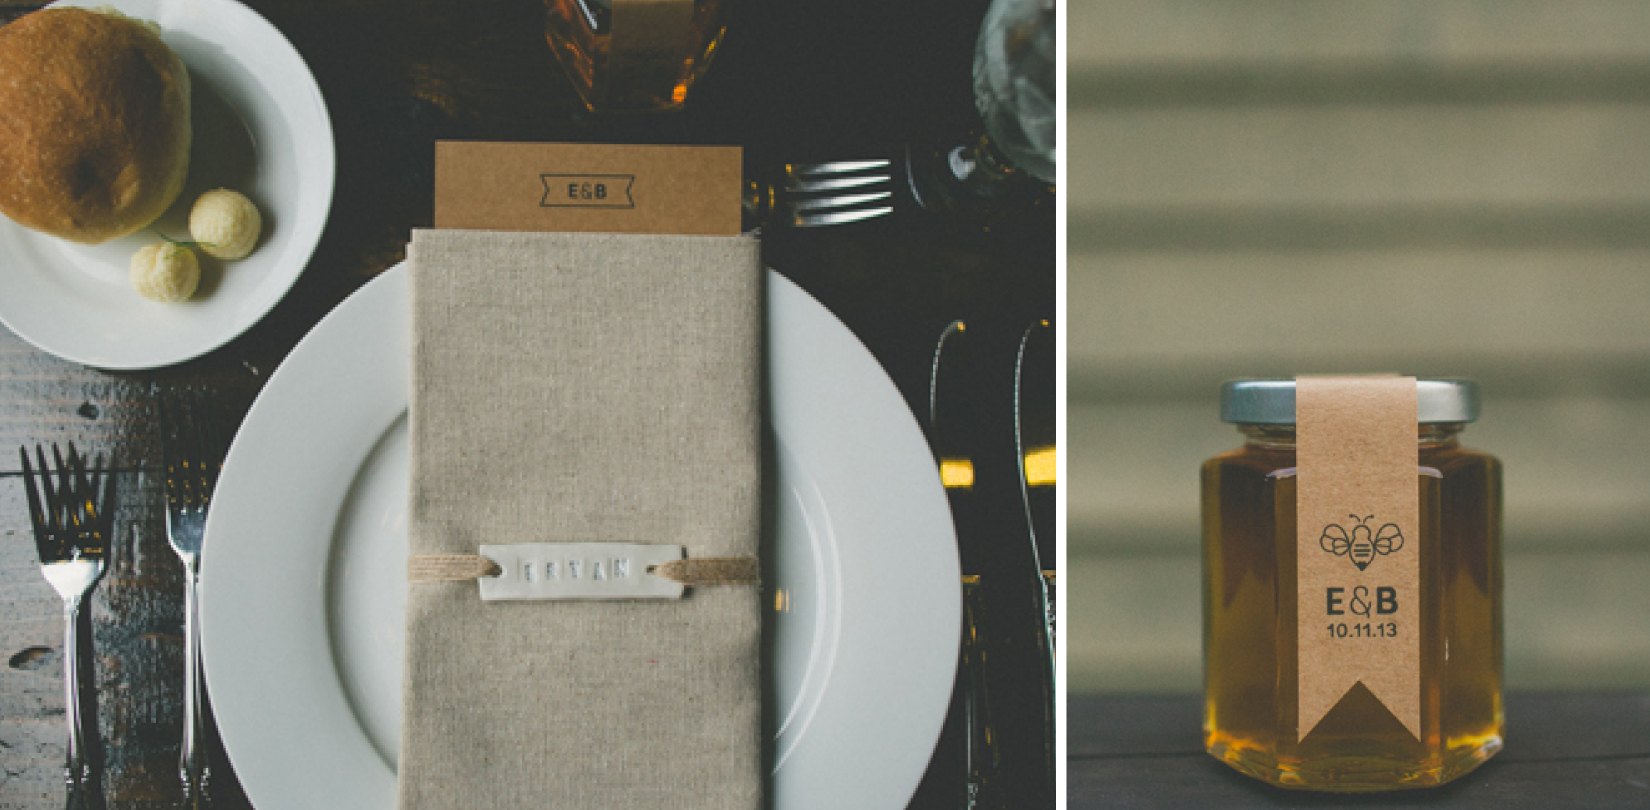 Friday Dinner Menu, Place Setting and Custom Honey Label - Erica & Bryan 10.11+12.13